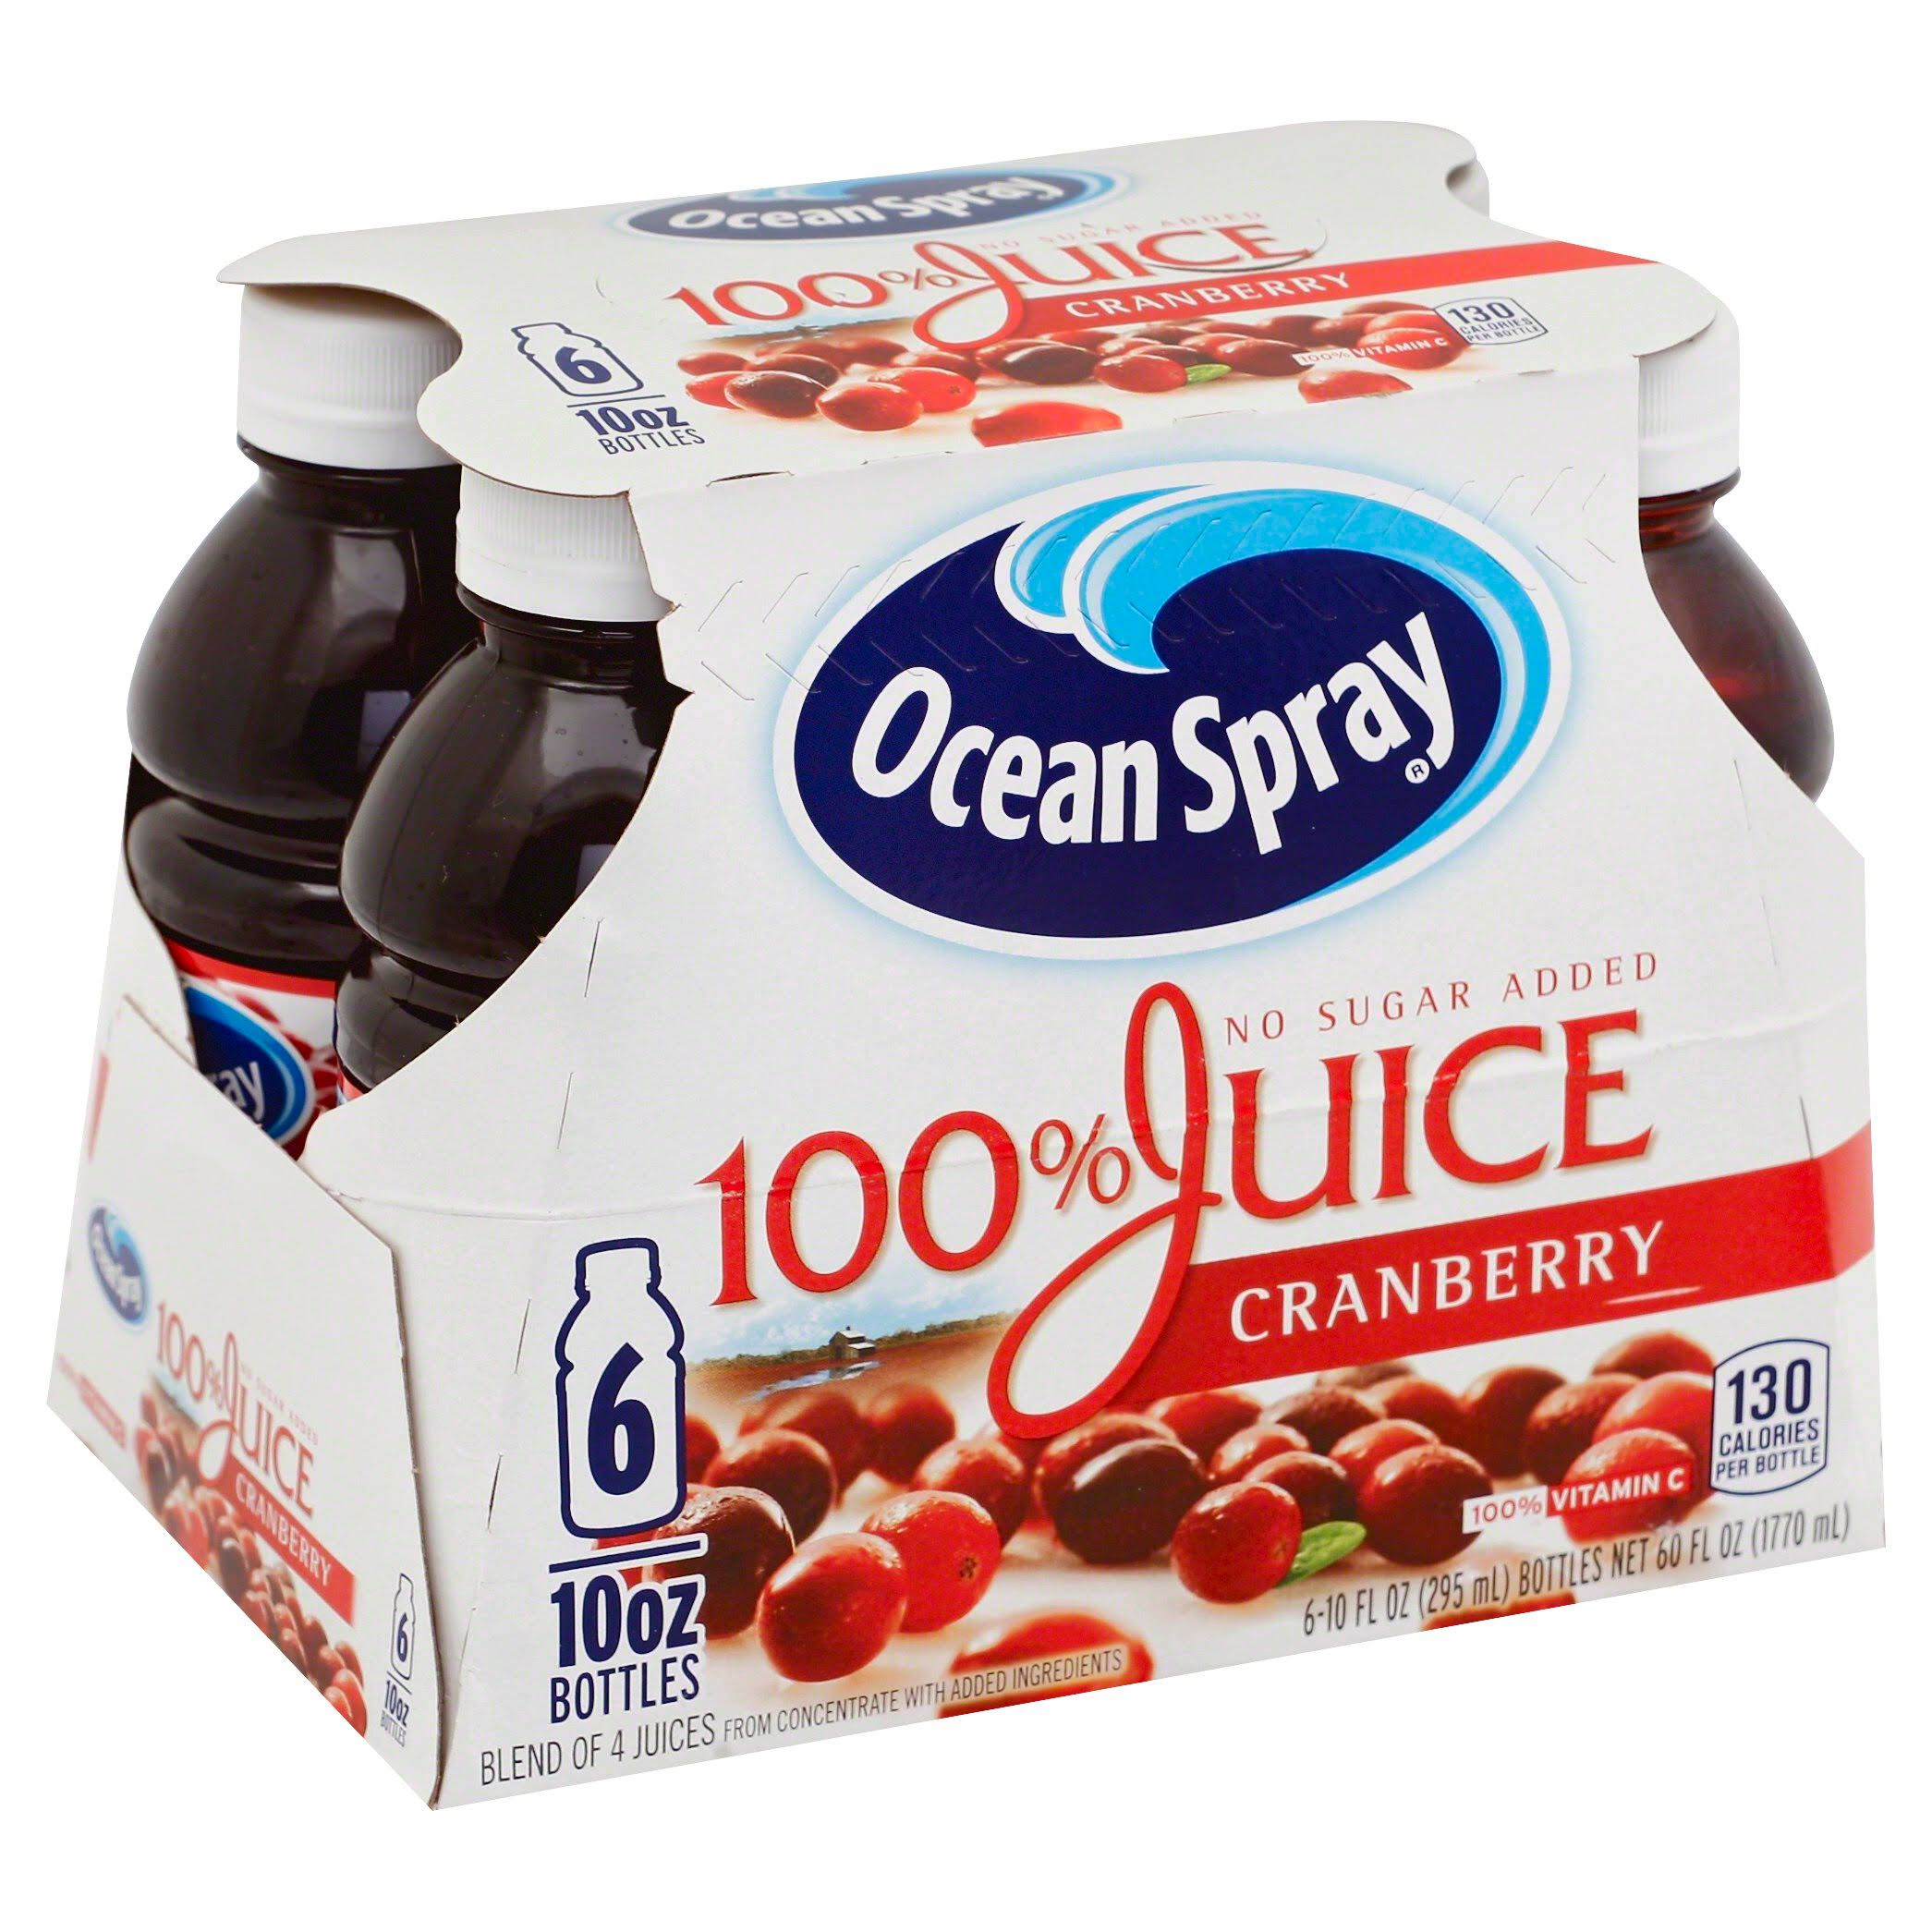 Ocean Spray 100% Juice Drink - Cranberry, 10oz, x6